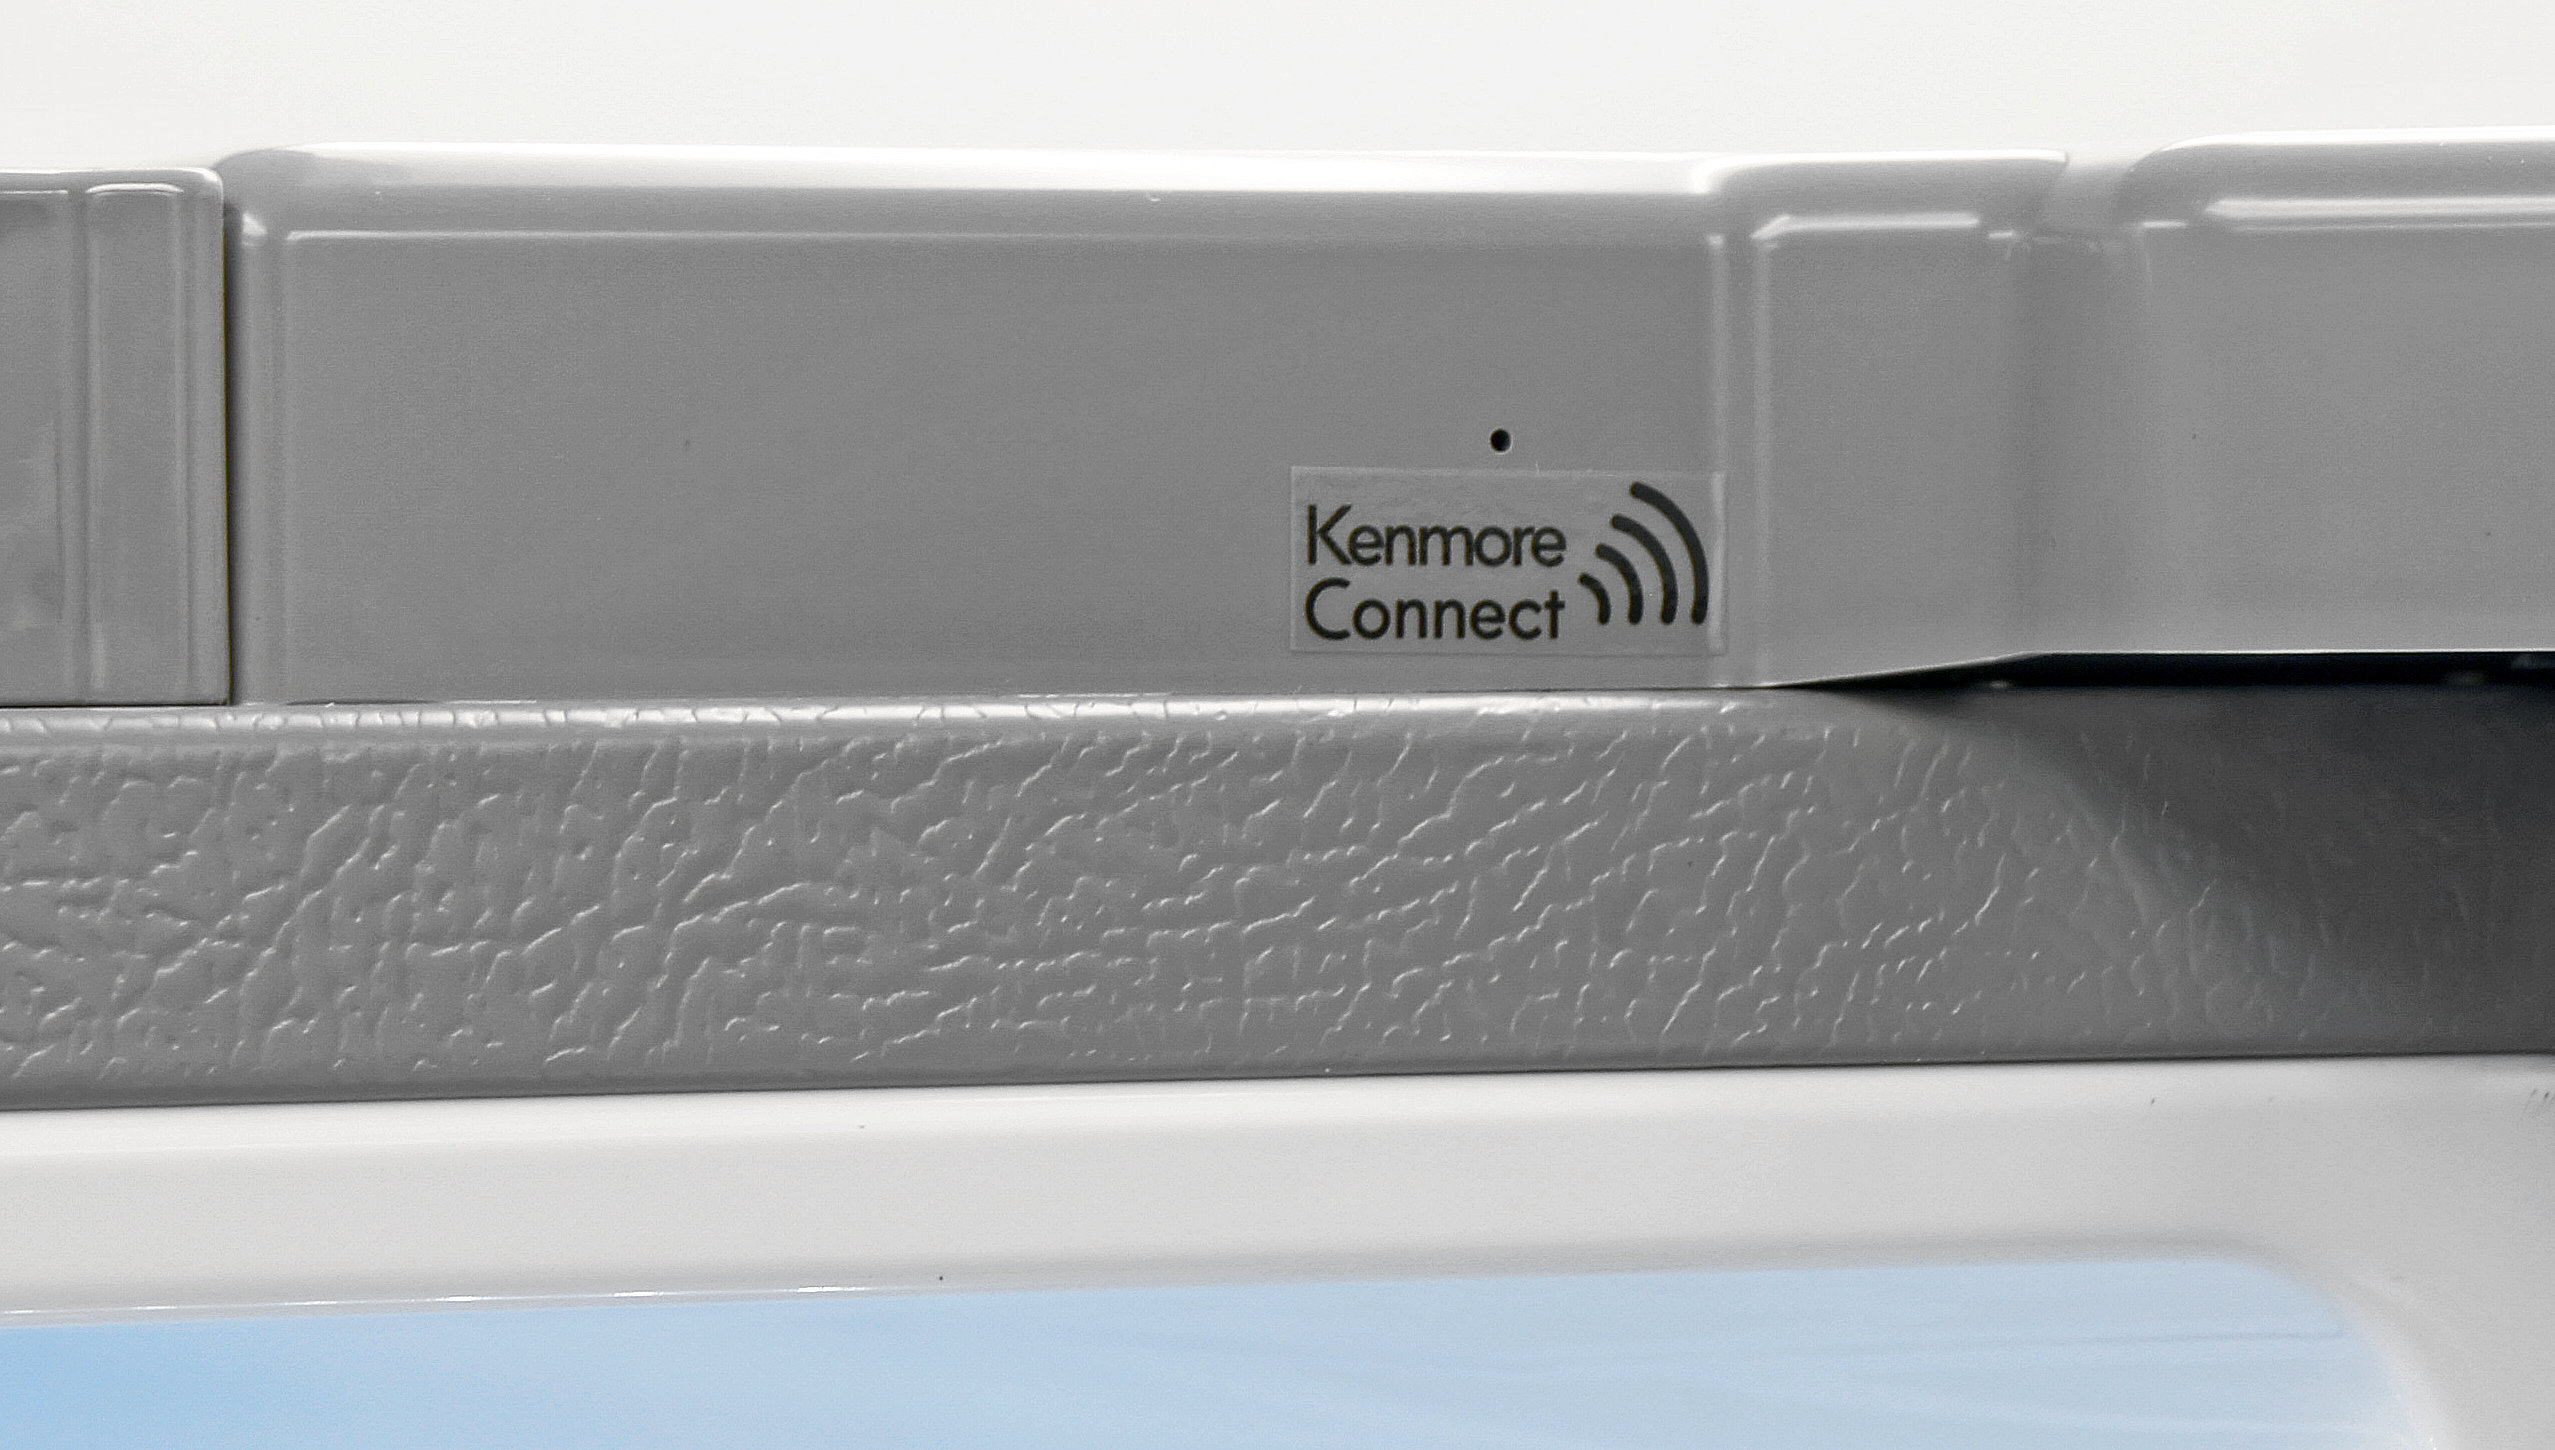 Kenmore Connect allows you to send error information via a smartphone app to streamline any repairs you might need to conduct on your Kenmore Elite 74033.